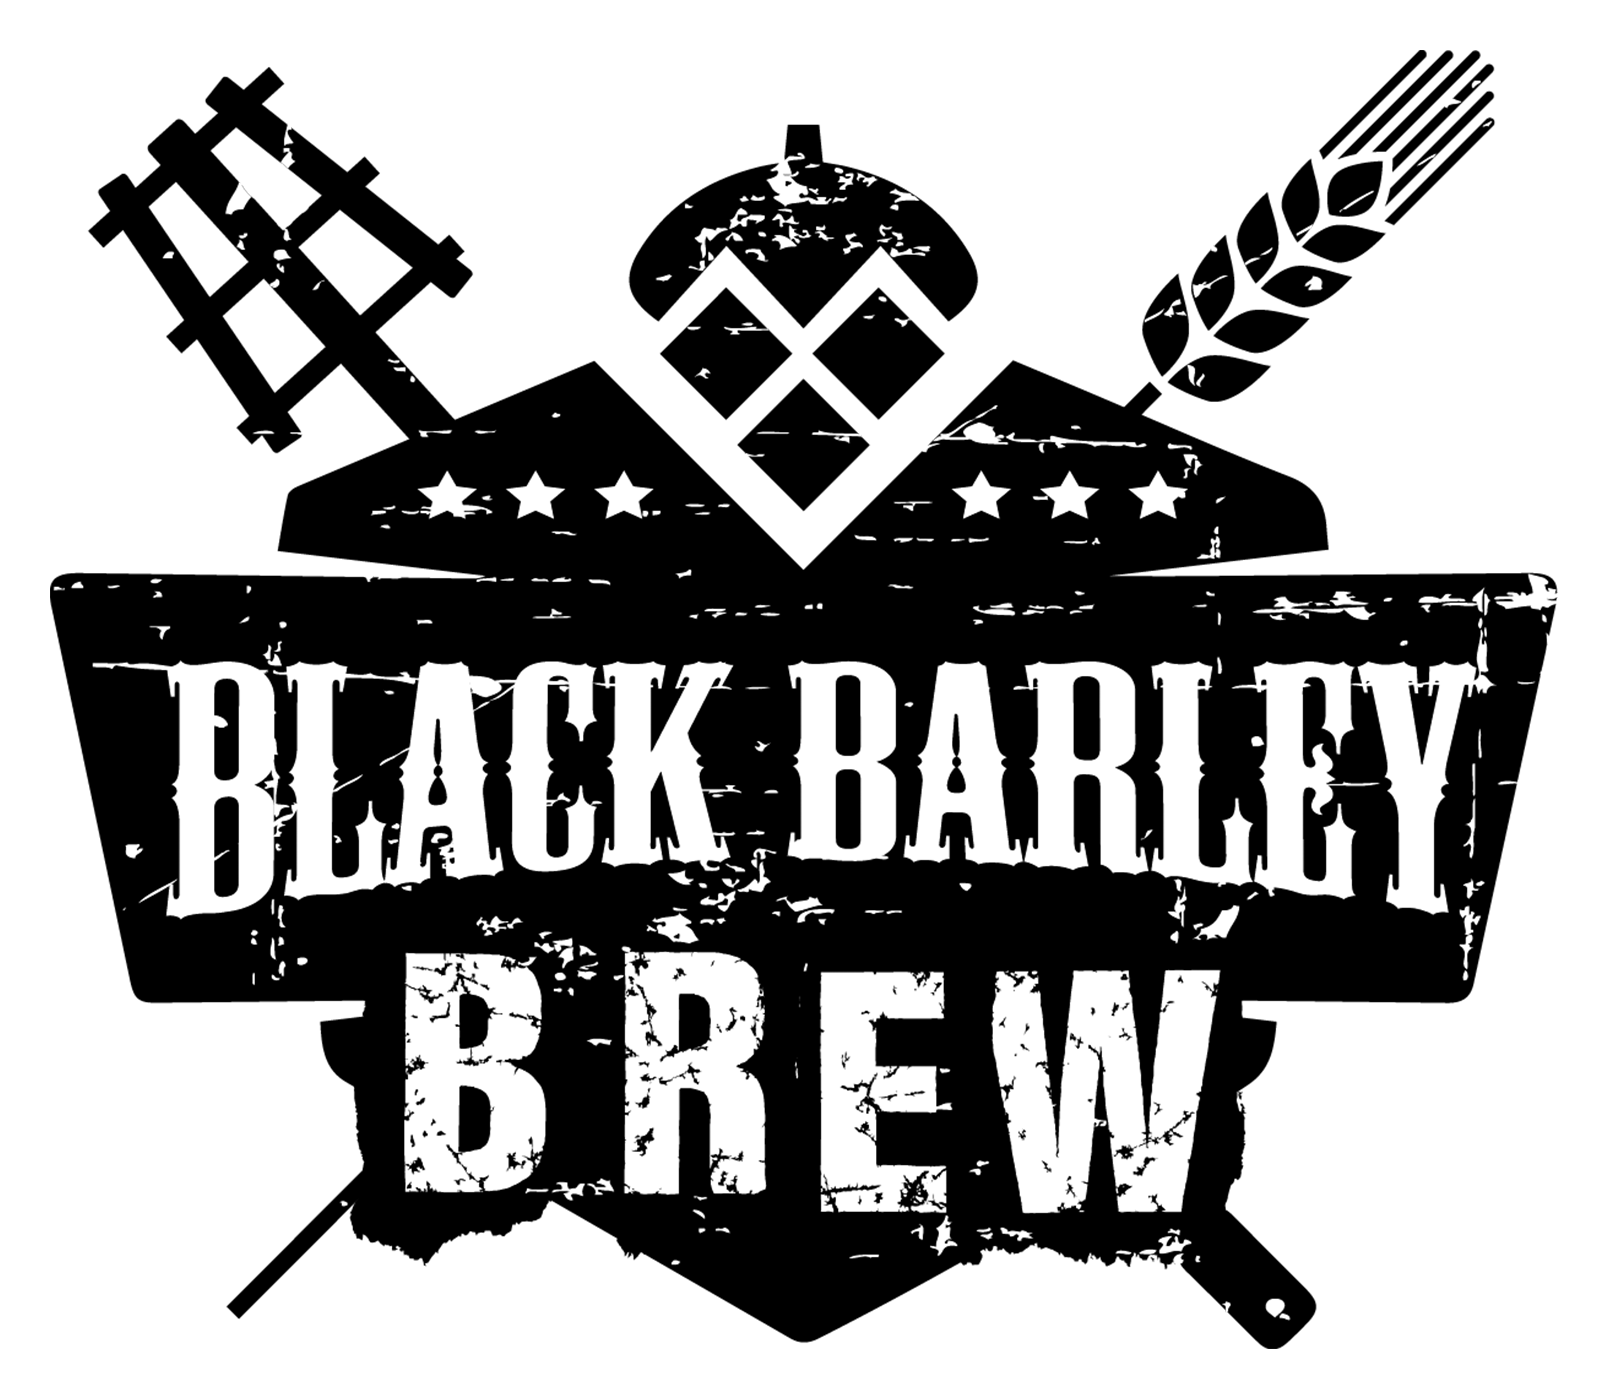 Black Barley Brew